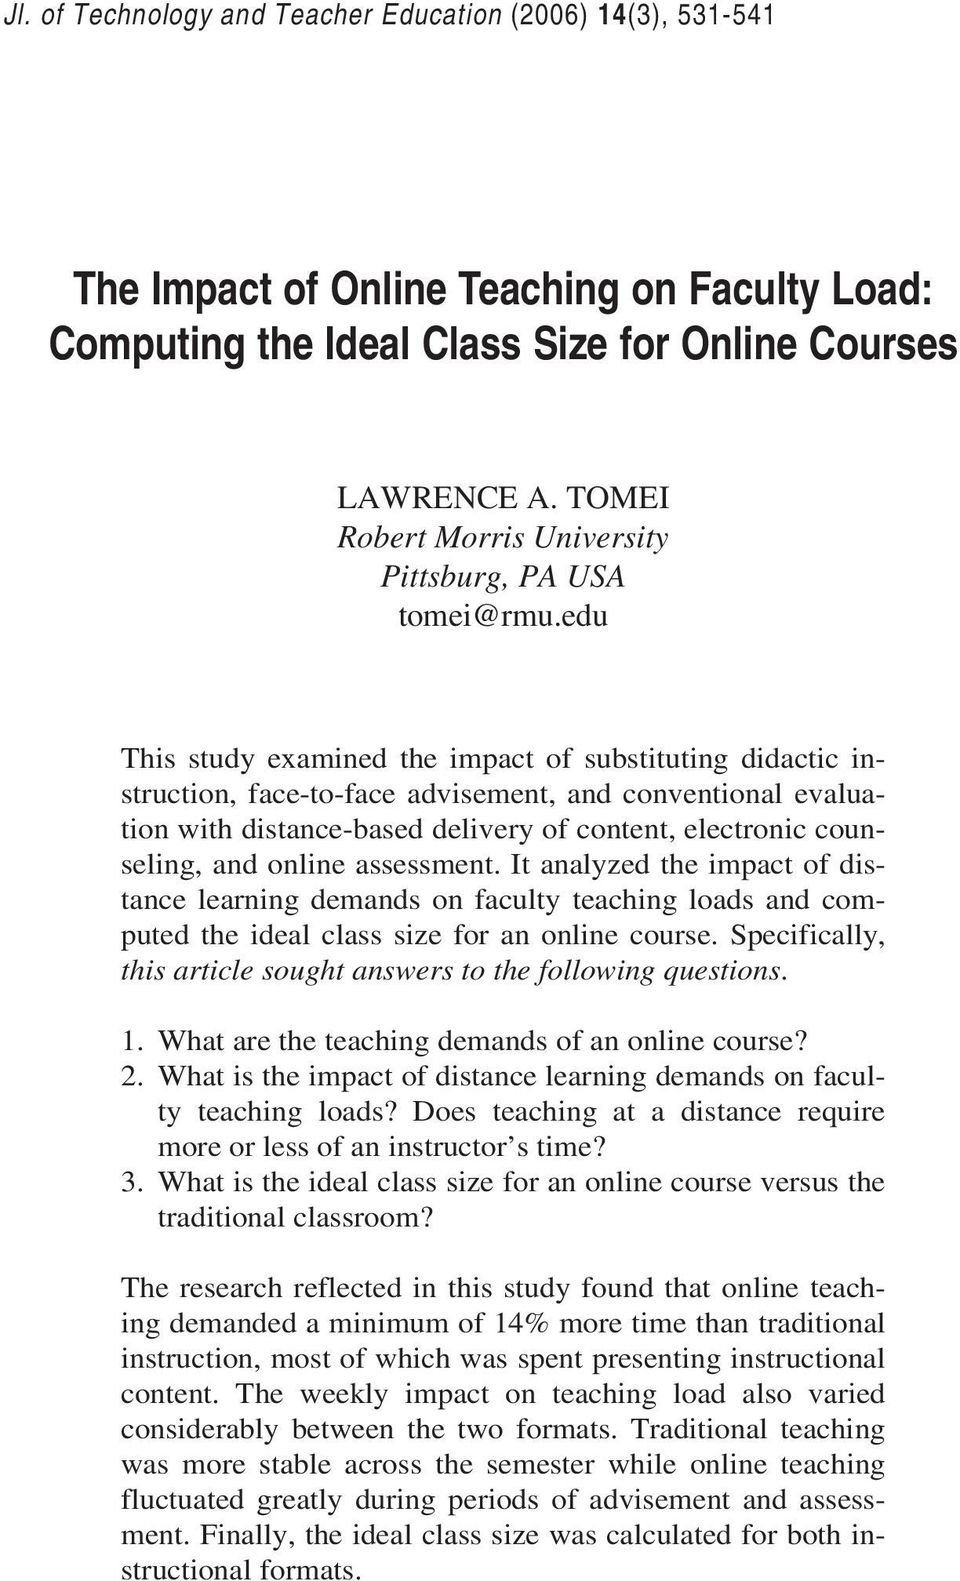 edu This study examined the impact of substituting didactic instruction, face-to-face advisement, and conventional evaluation with distance-based delivery of content, electronic counseling, and